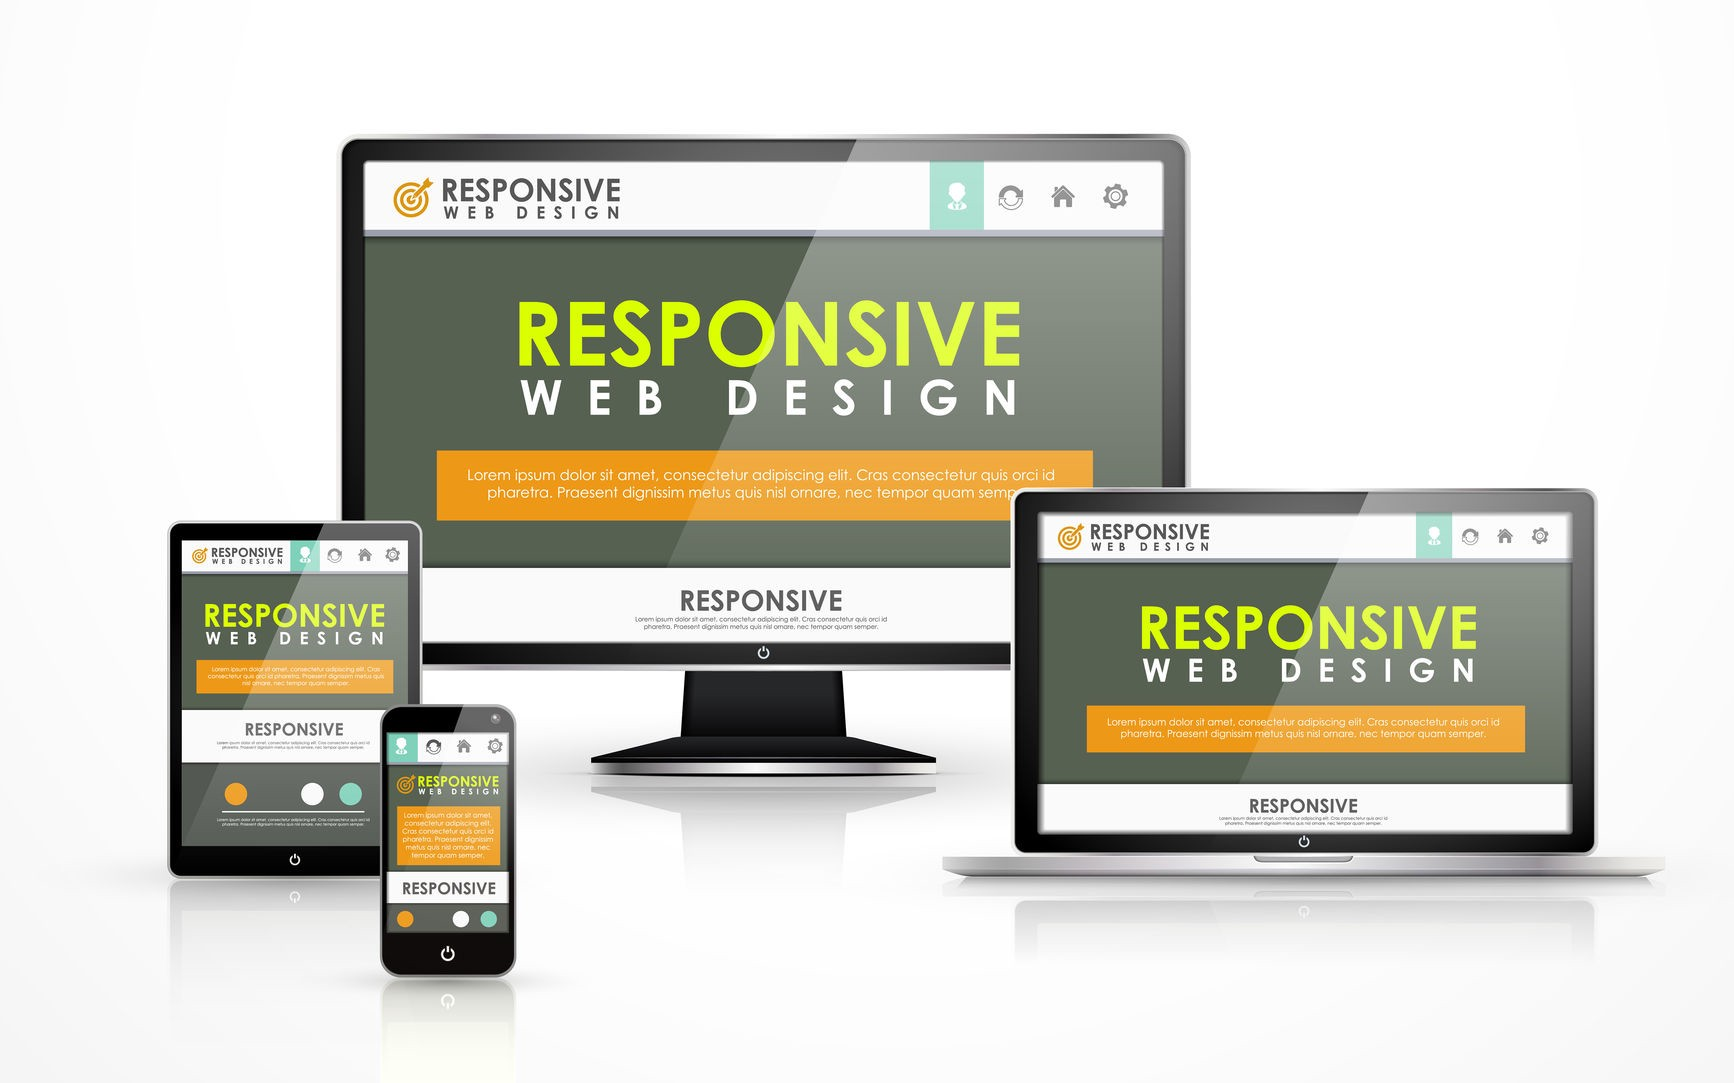 User Friendly Responsive Web Design and its' Benefits